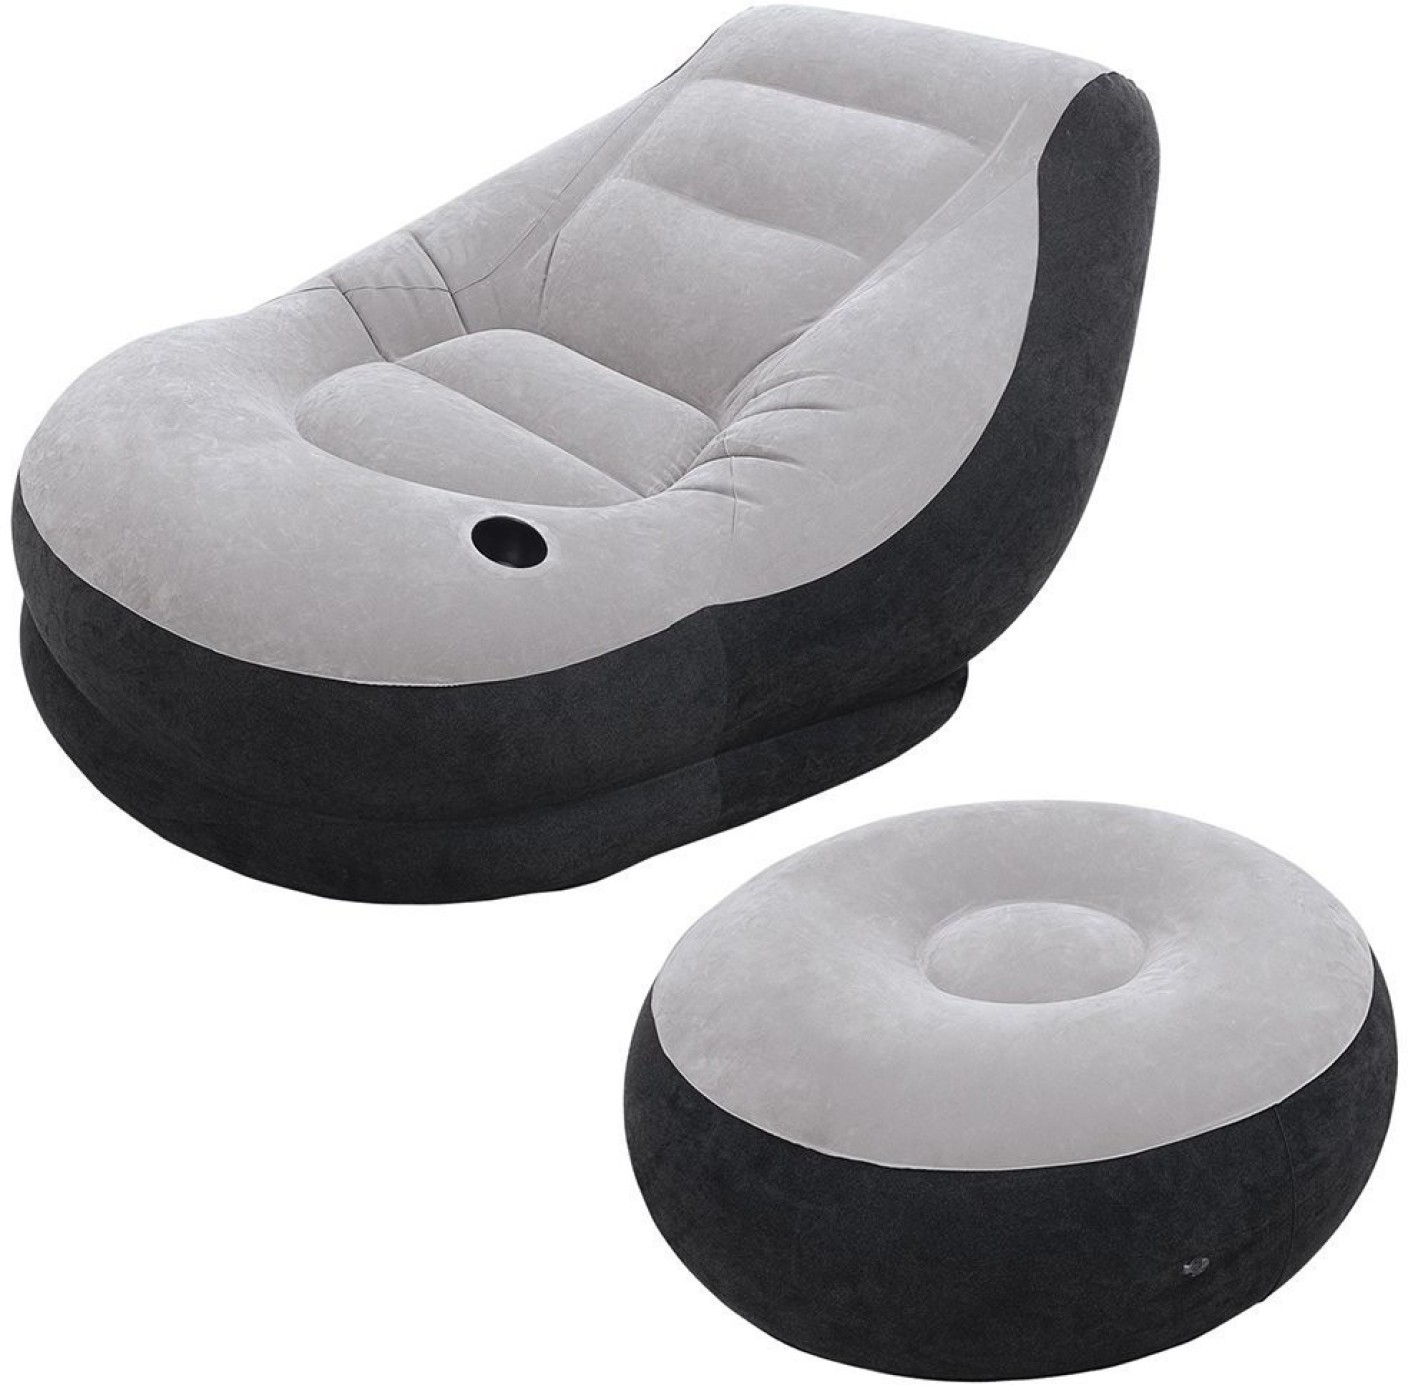 Intex Vw Intex Ottoman Chair Vinyl 1 Seater Inflatable